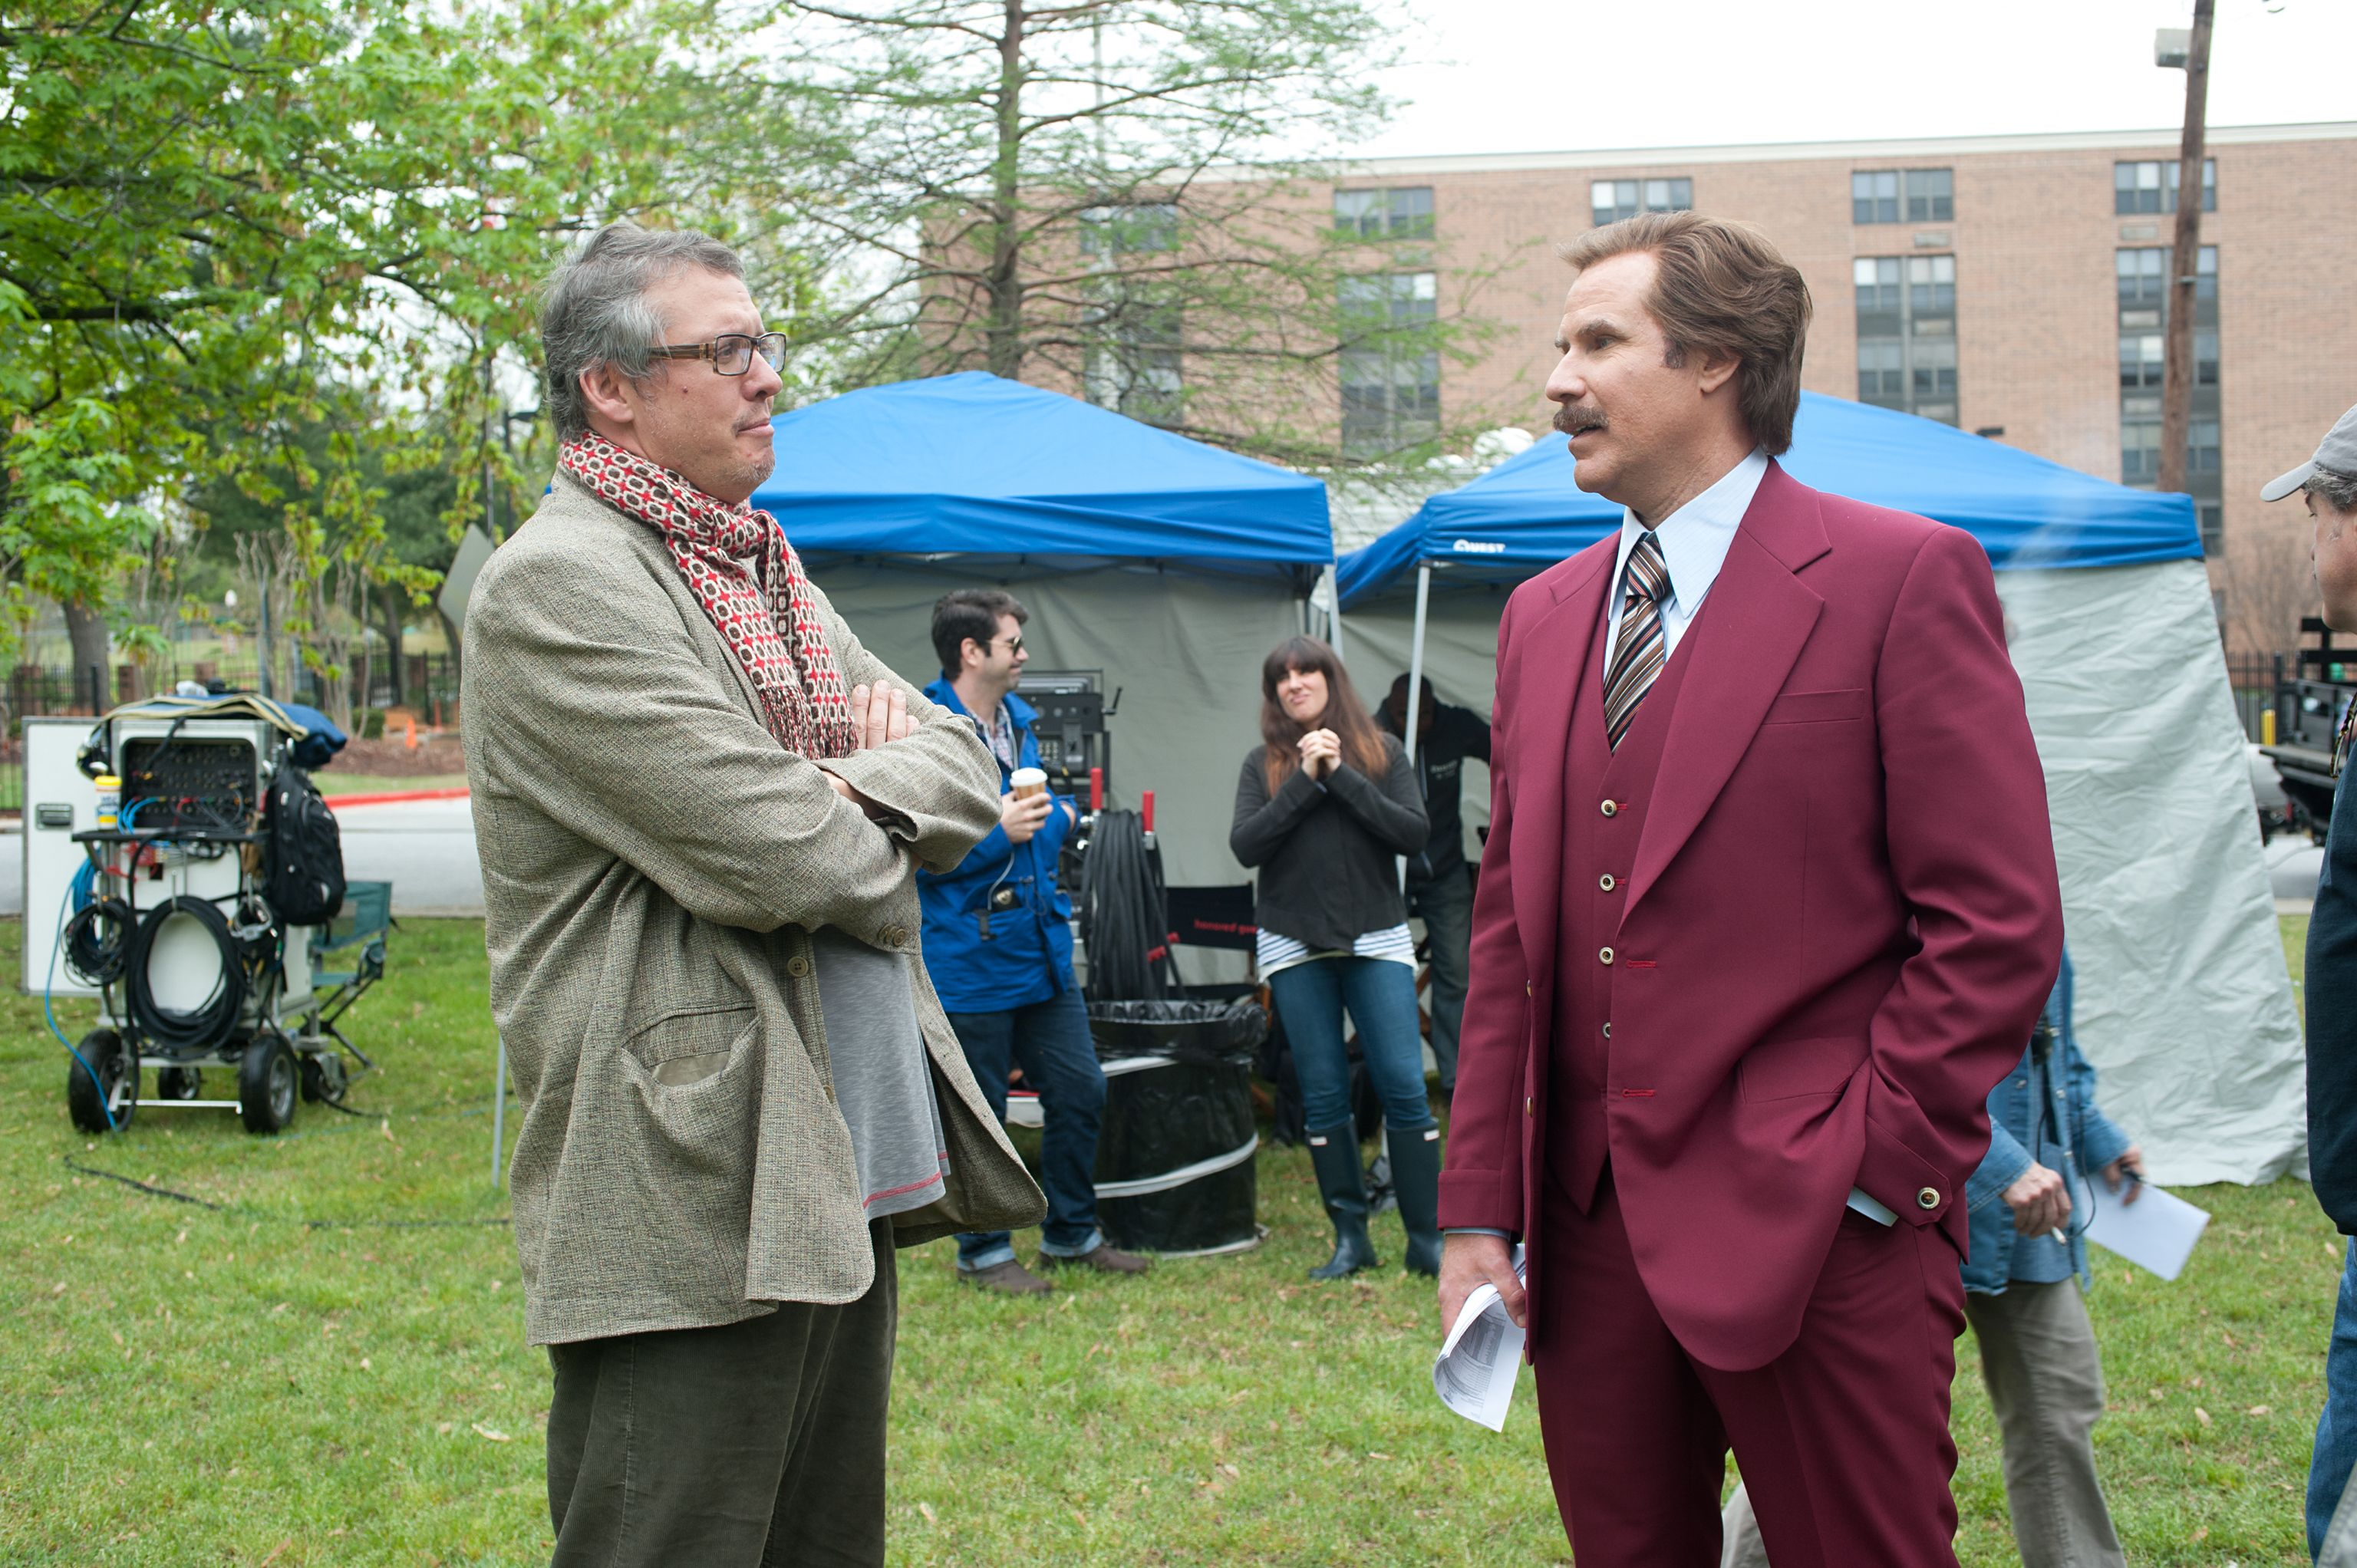 Anchorman 3 Not Happening Director Adam Mckay Sheds Doubt On Step